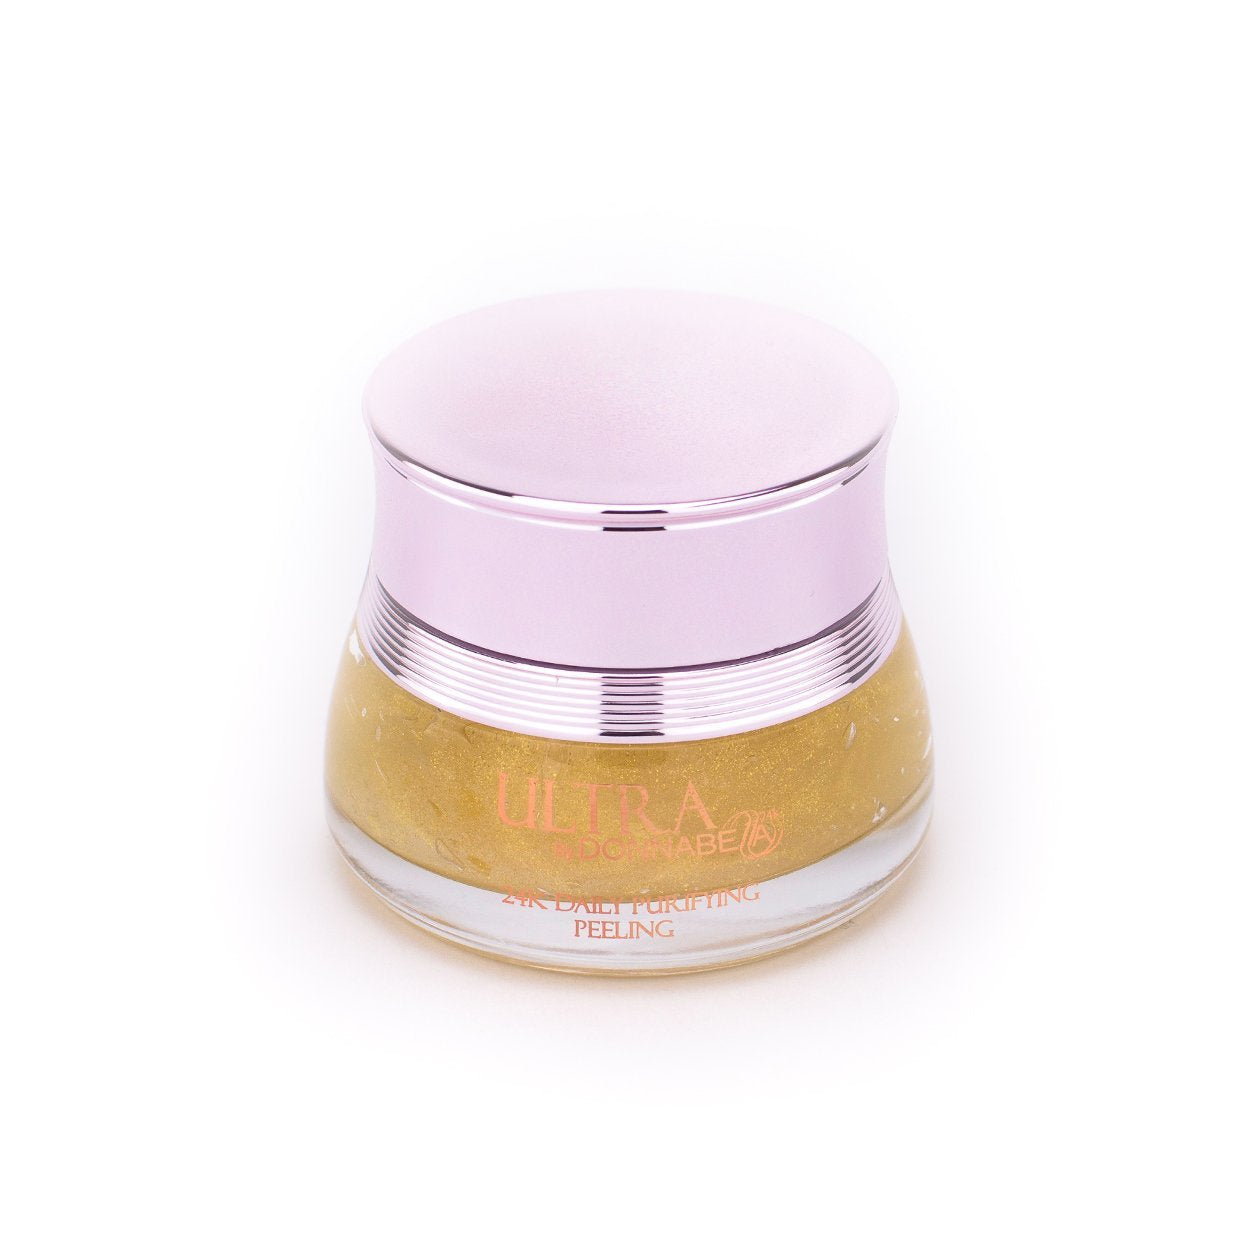 24K Gold Daily Purifying Peeling